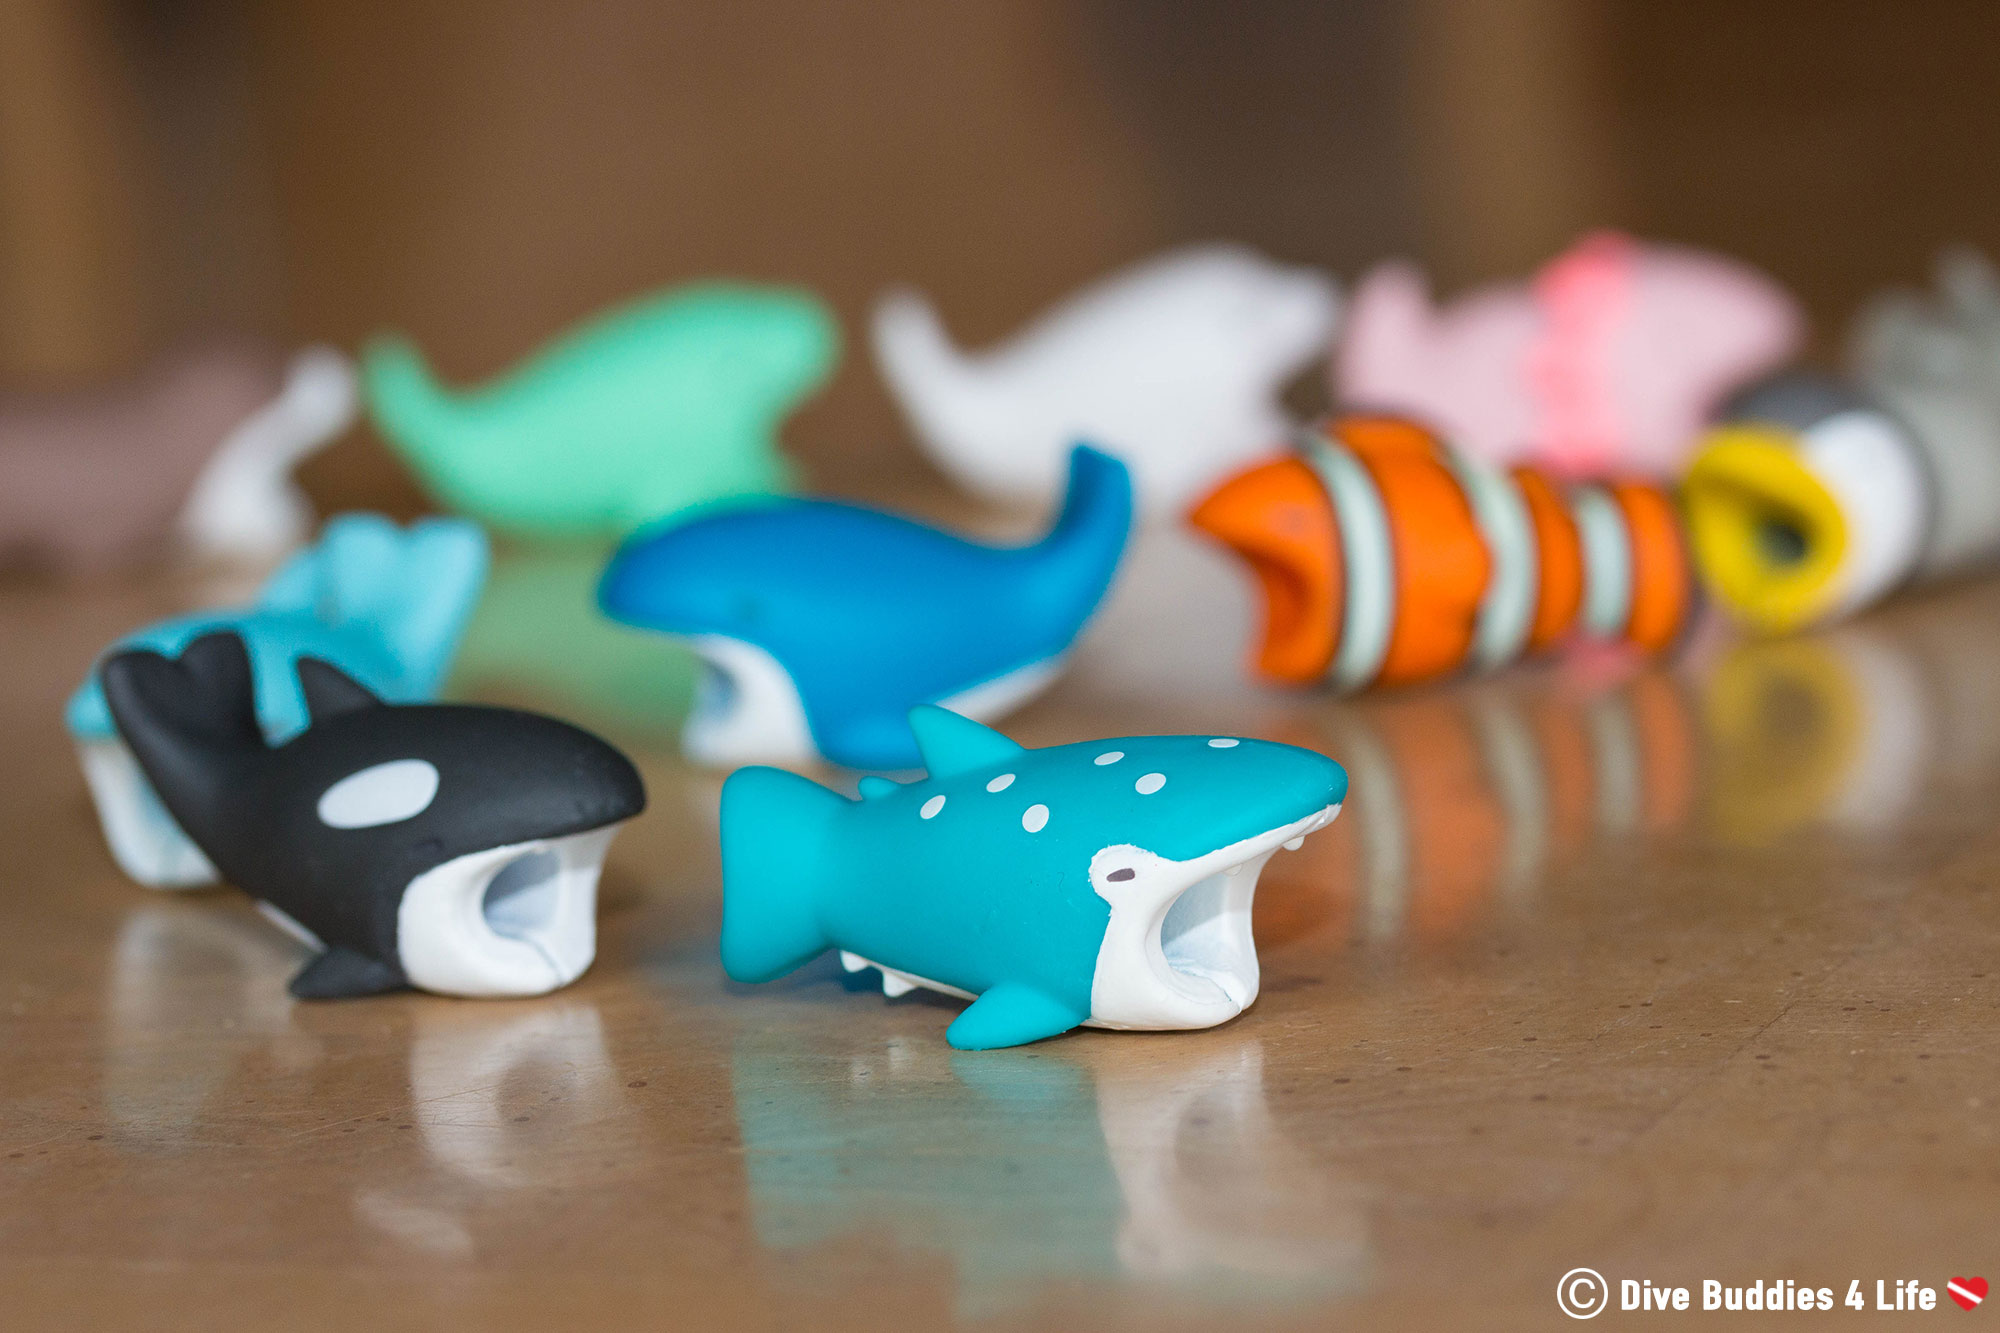 A Line Up Of Marine Animal Cable Bites To Protect Charging Cords